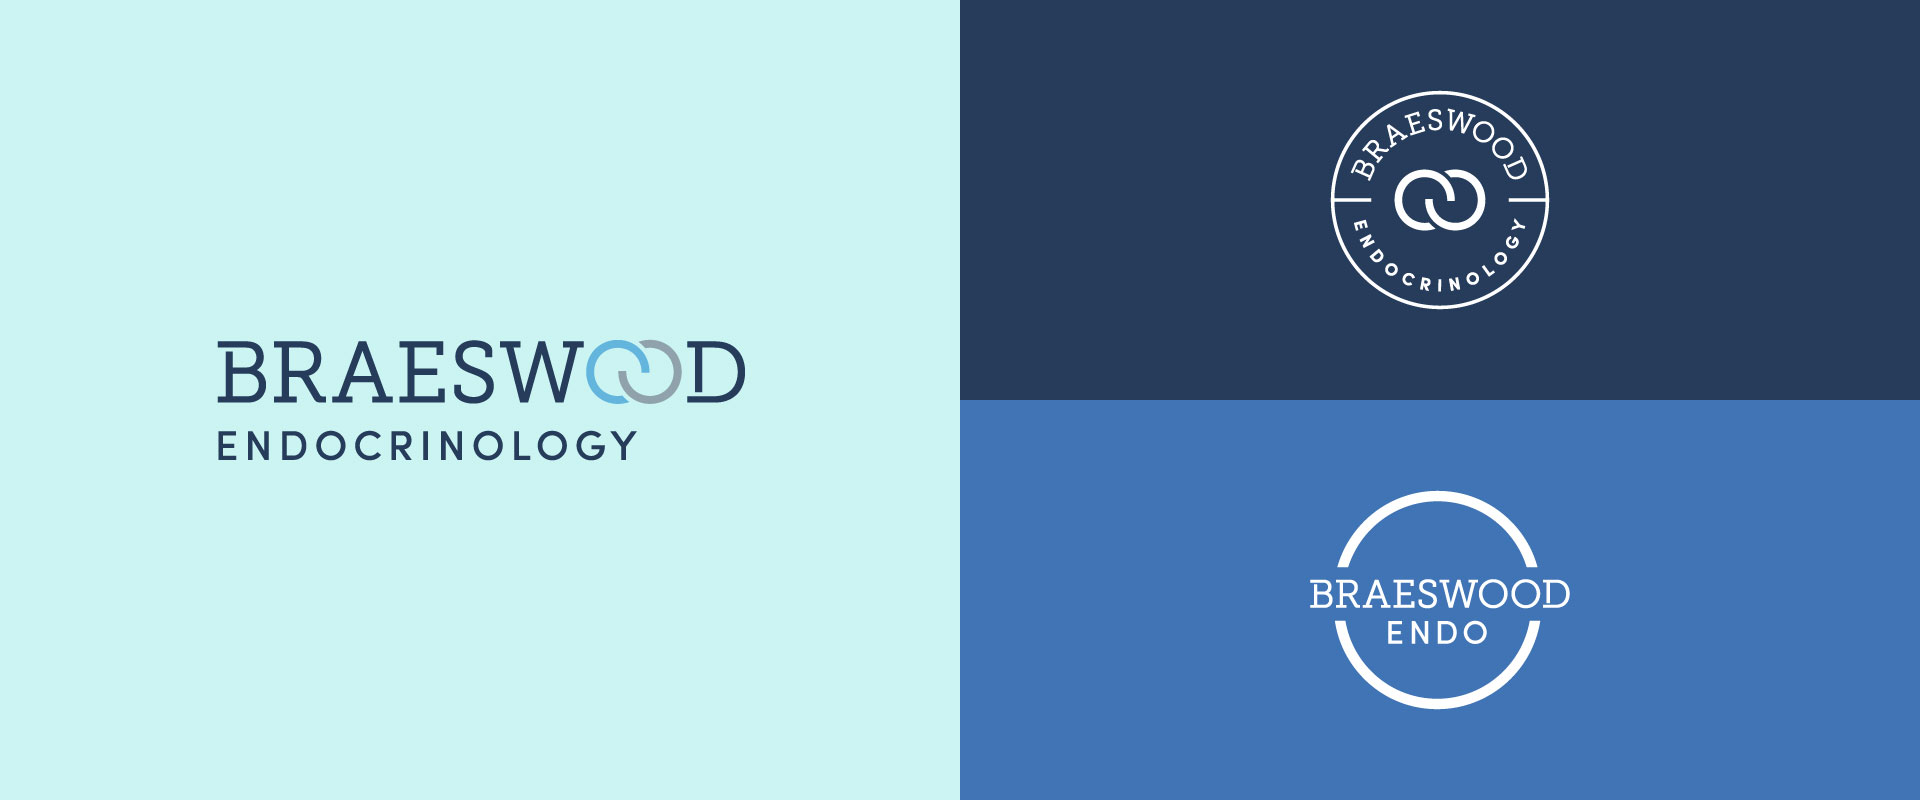 Braeswood Endocrinology medical practice logos